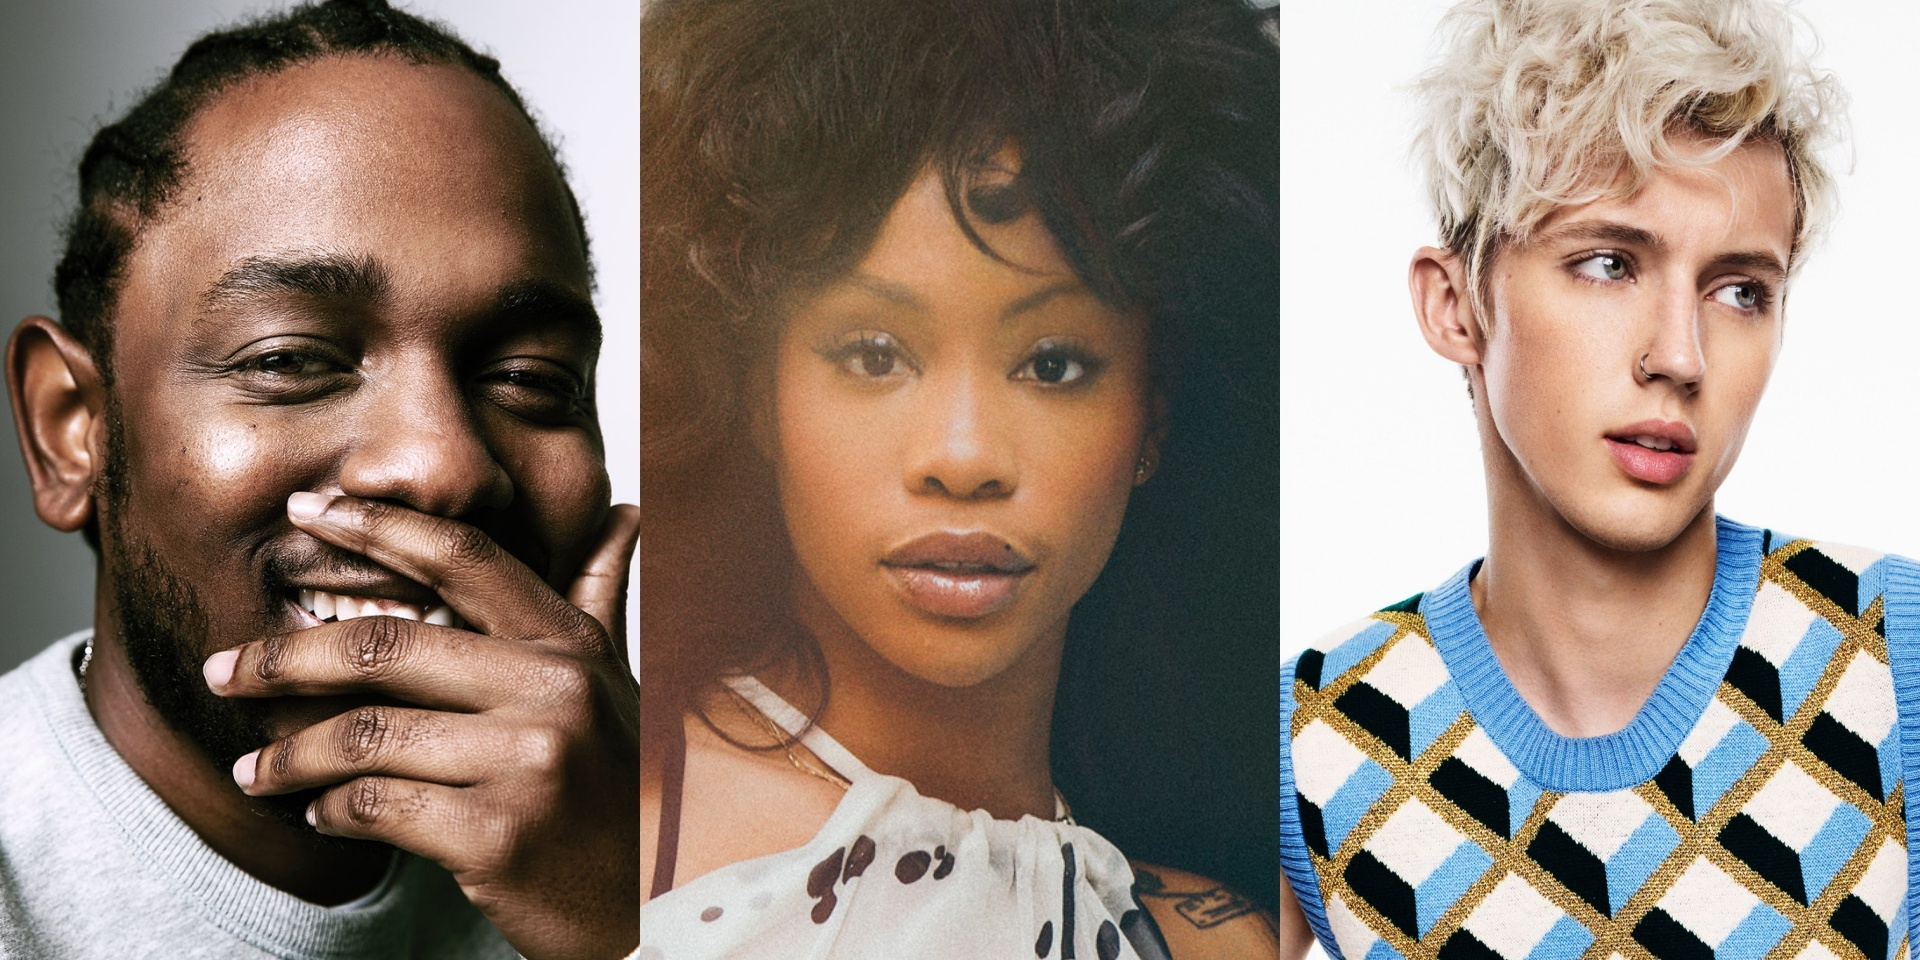 Kendrick Lamar, SZA, Troye Sivan and more shortlisted for 2019 Oscars